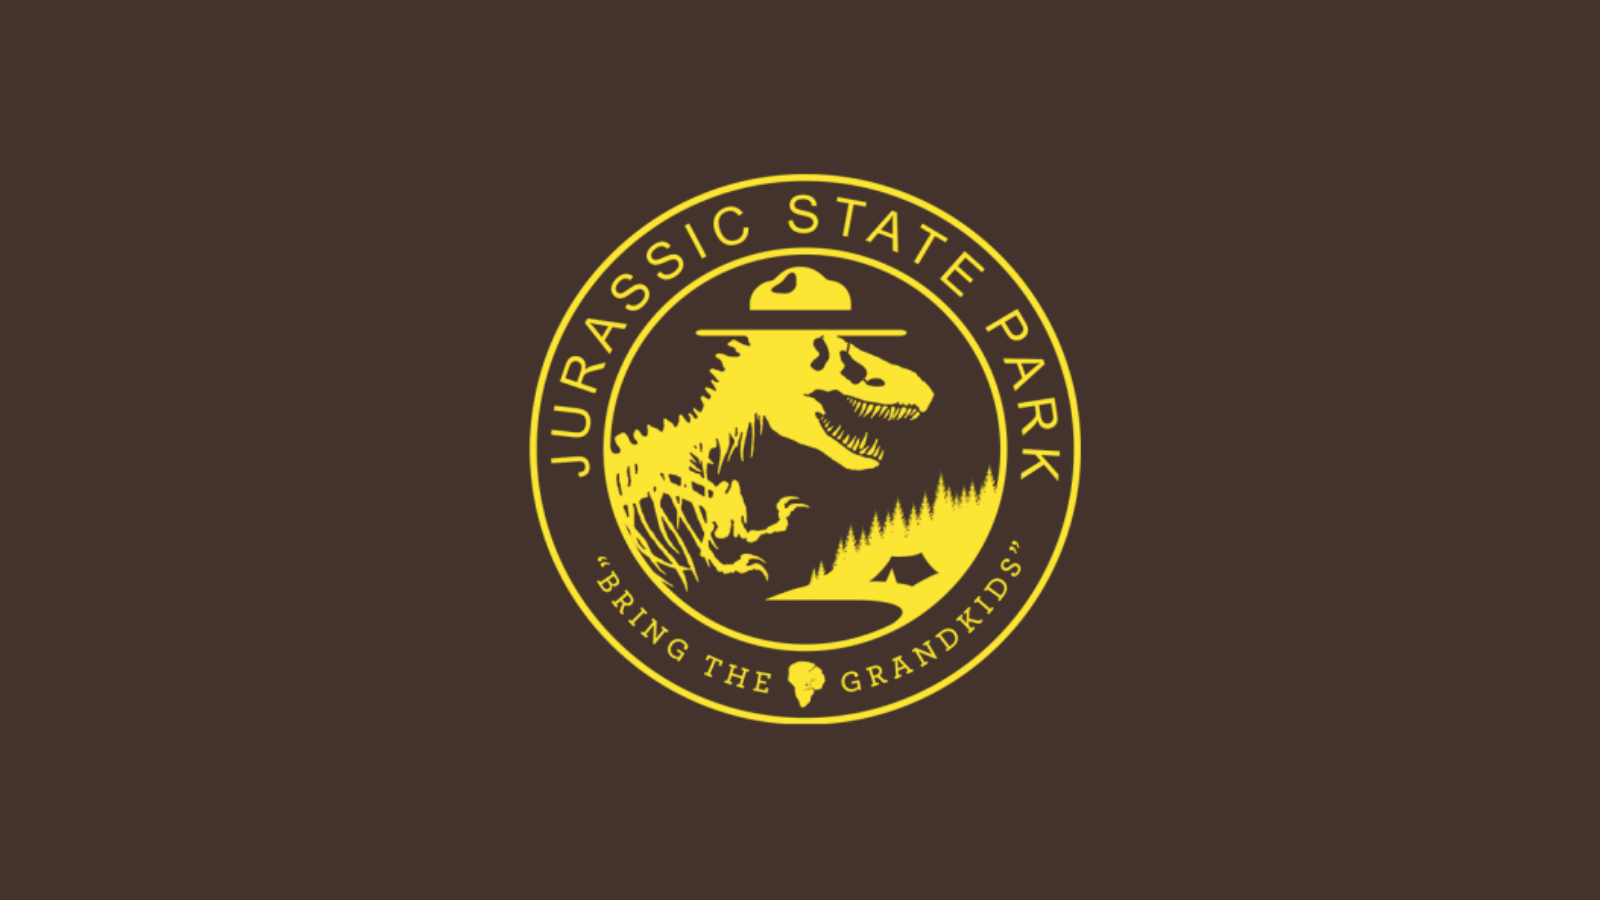 Jurassic State Park.png